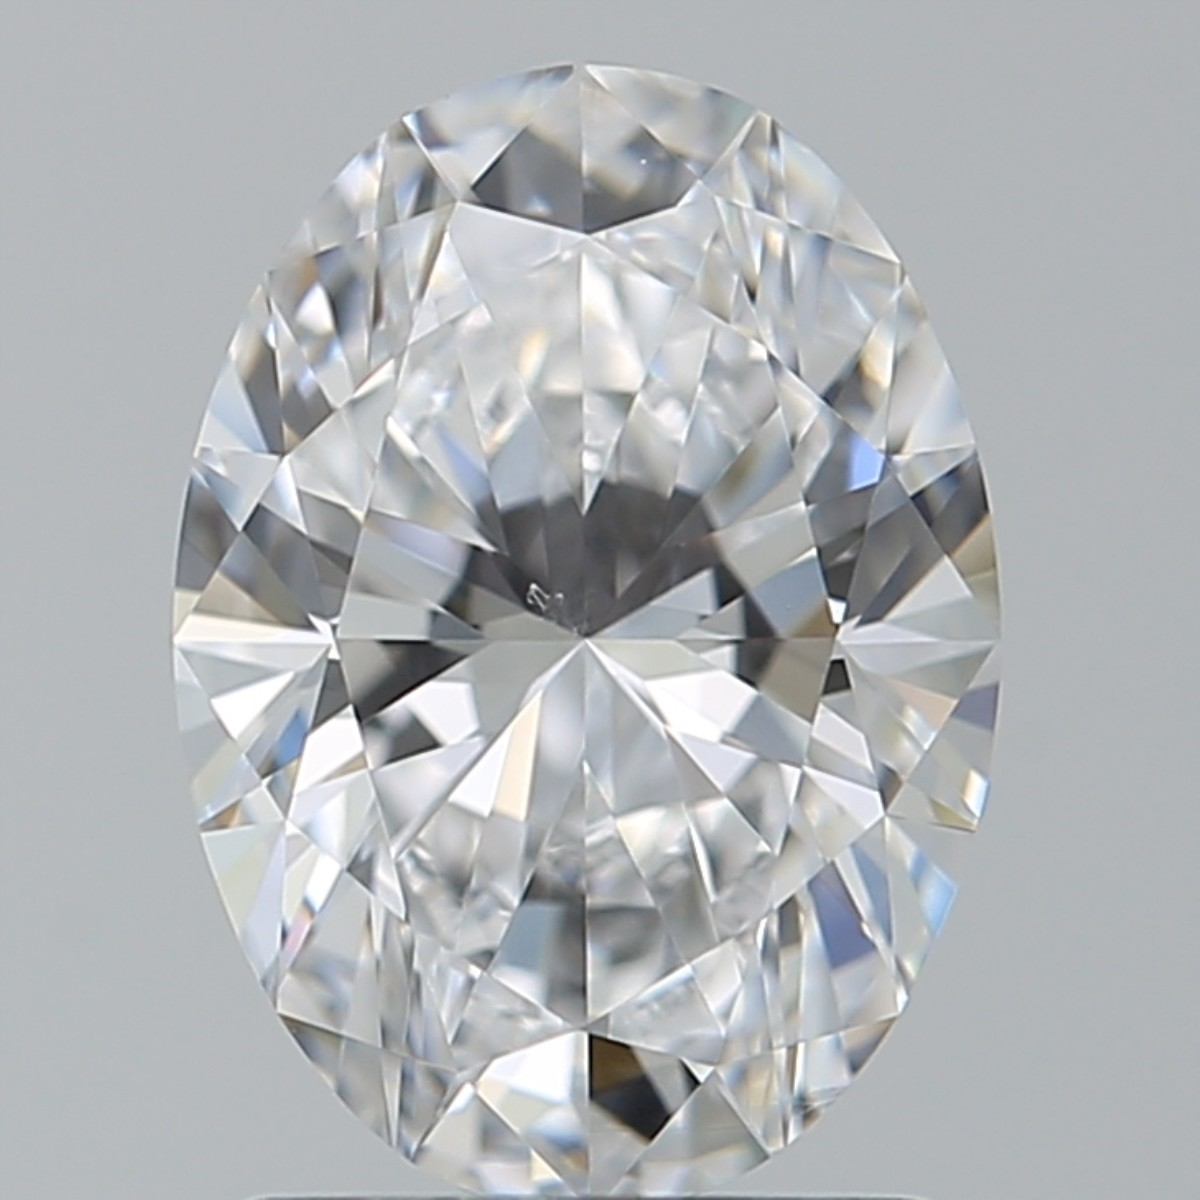 1.51 Carat Oval Diamond (D/VS2)